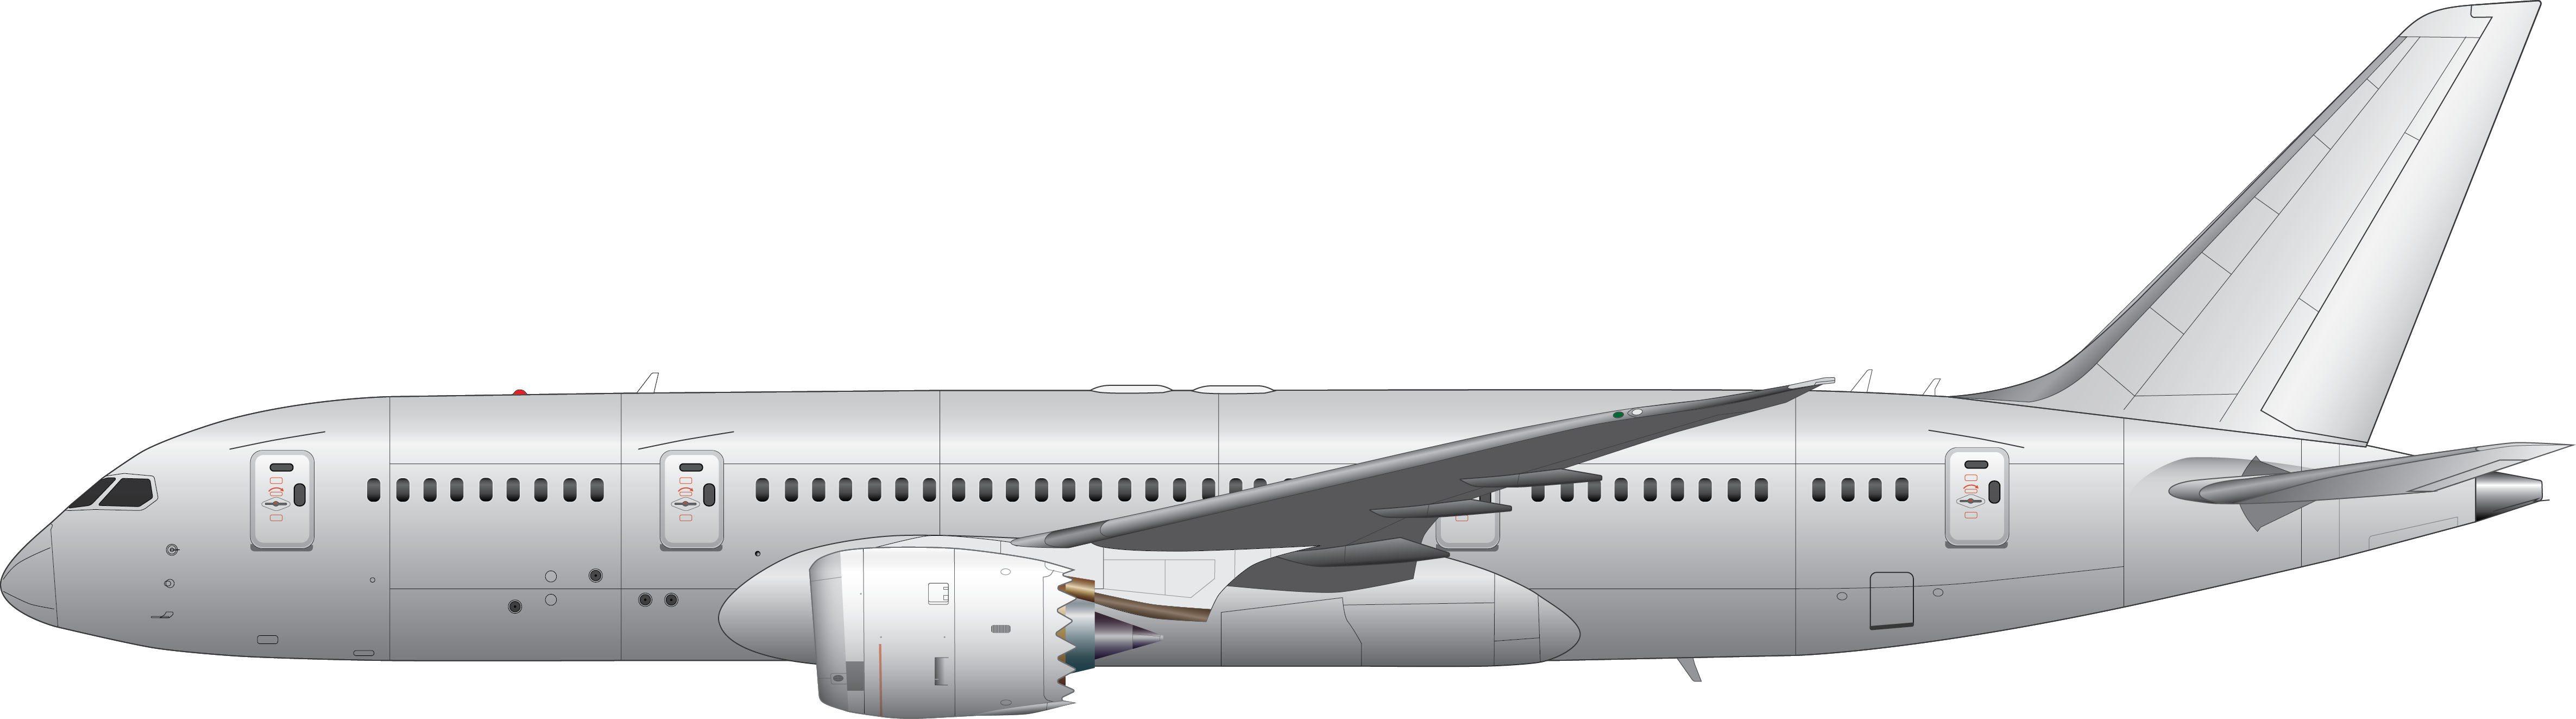 schematic of a 747 f